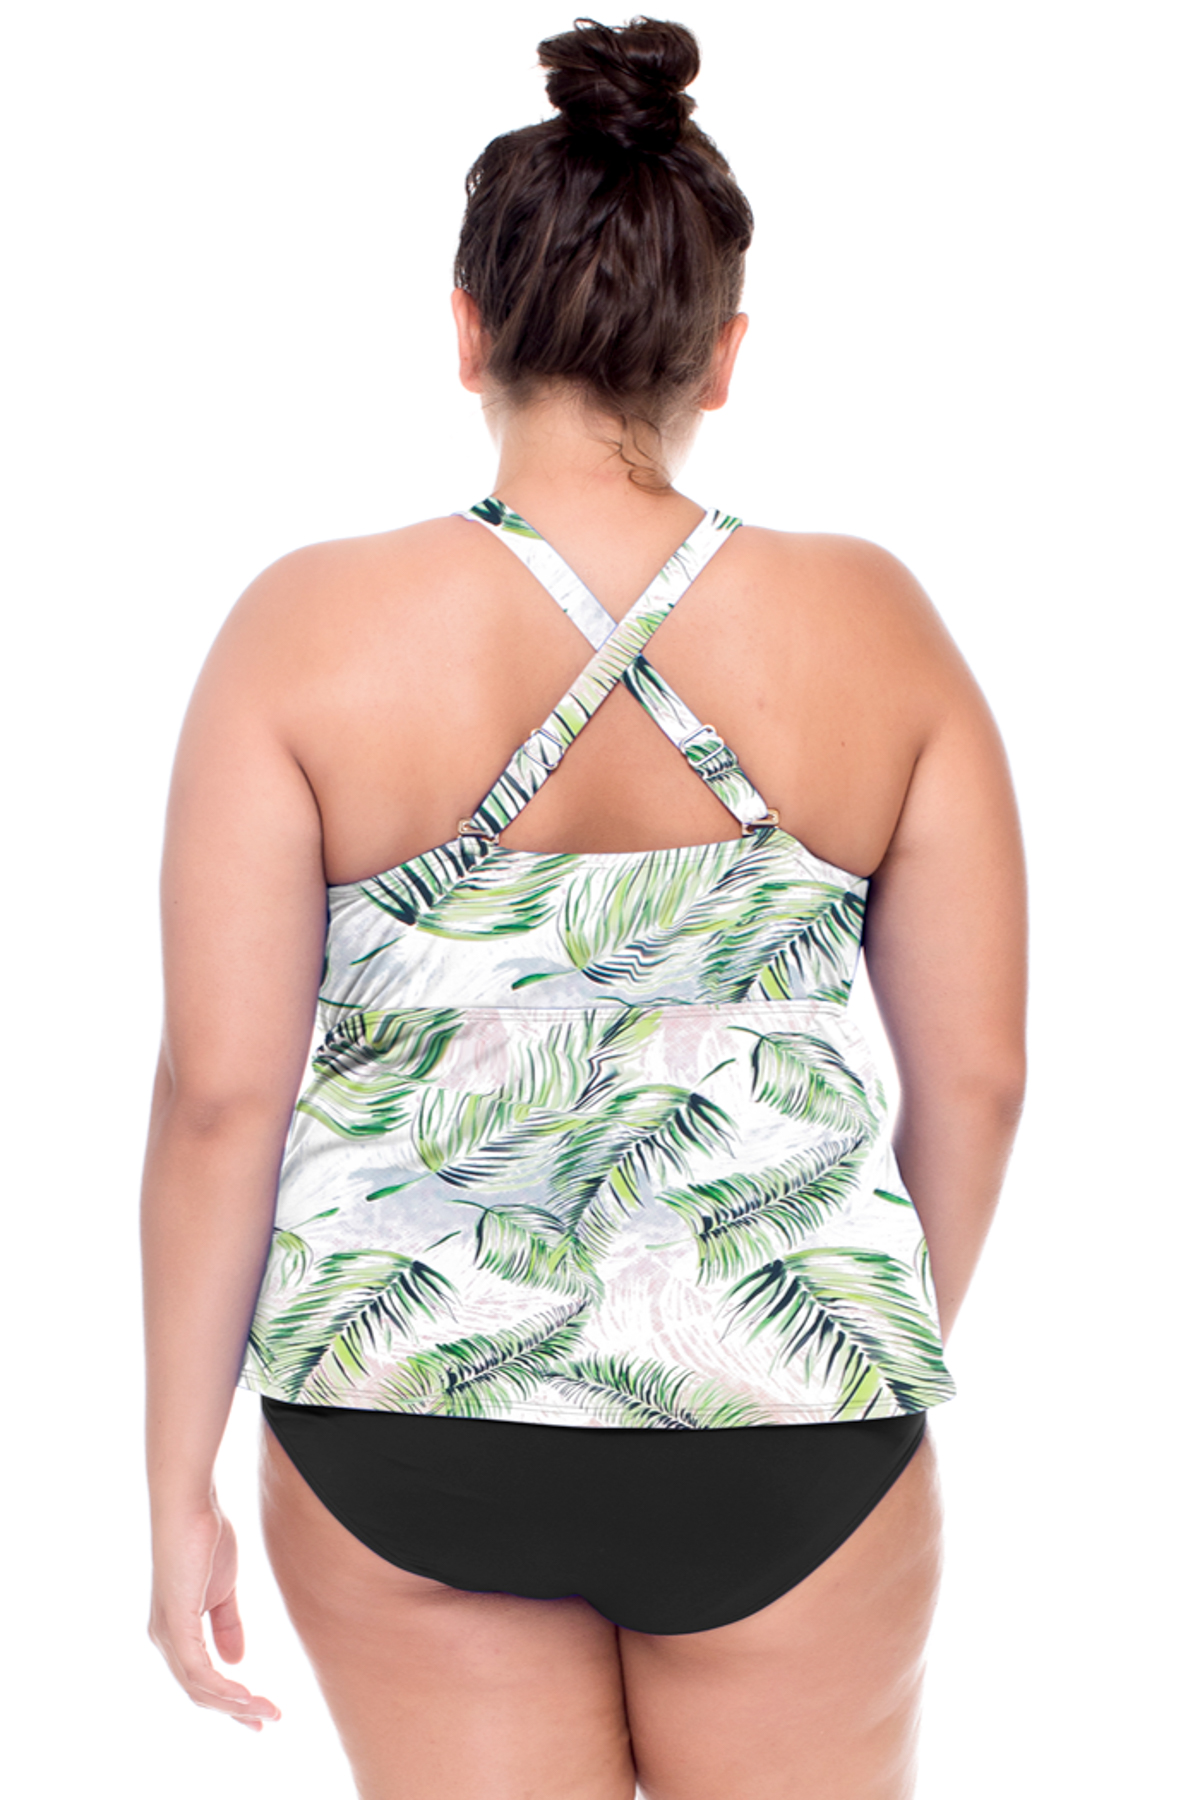 Hannah High Neck Convertible Strap Tankini Top (C-D Cup) - Island Mist 2